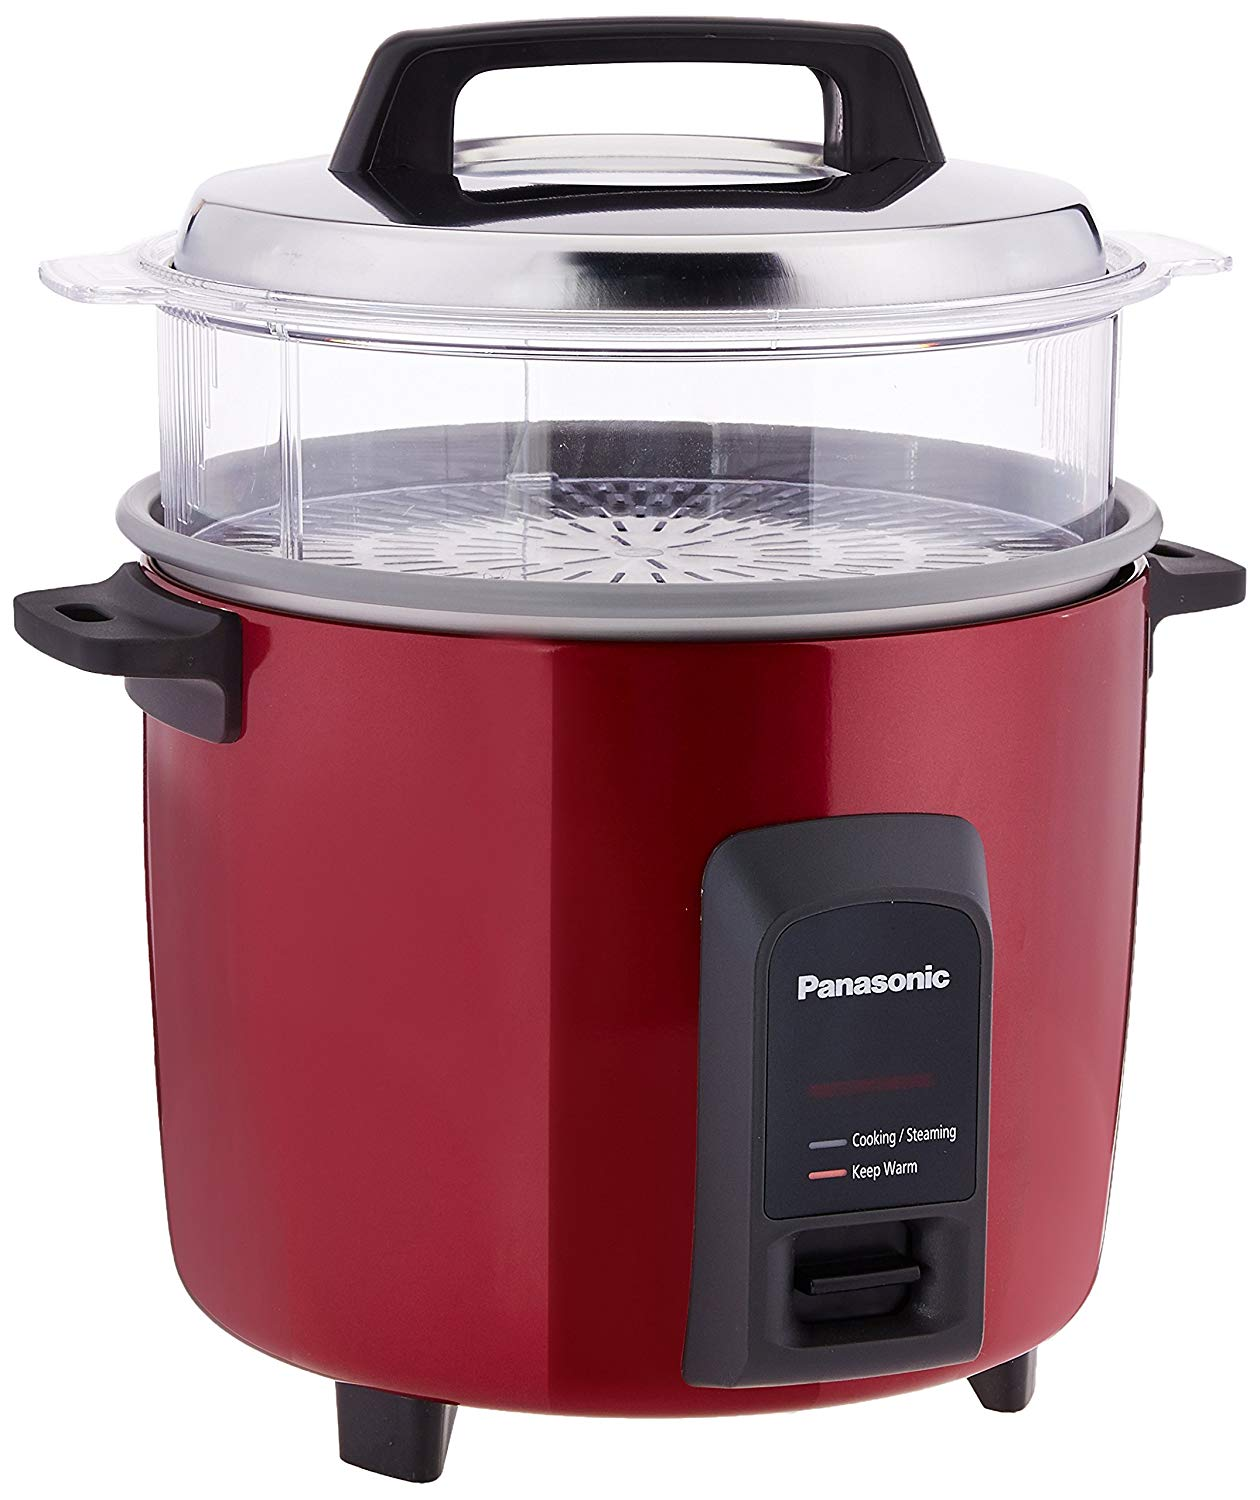 Panasonic SR-Y22FHS Electric Rice Cooker